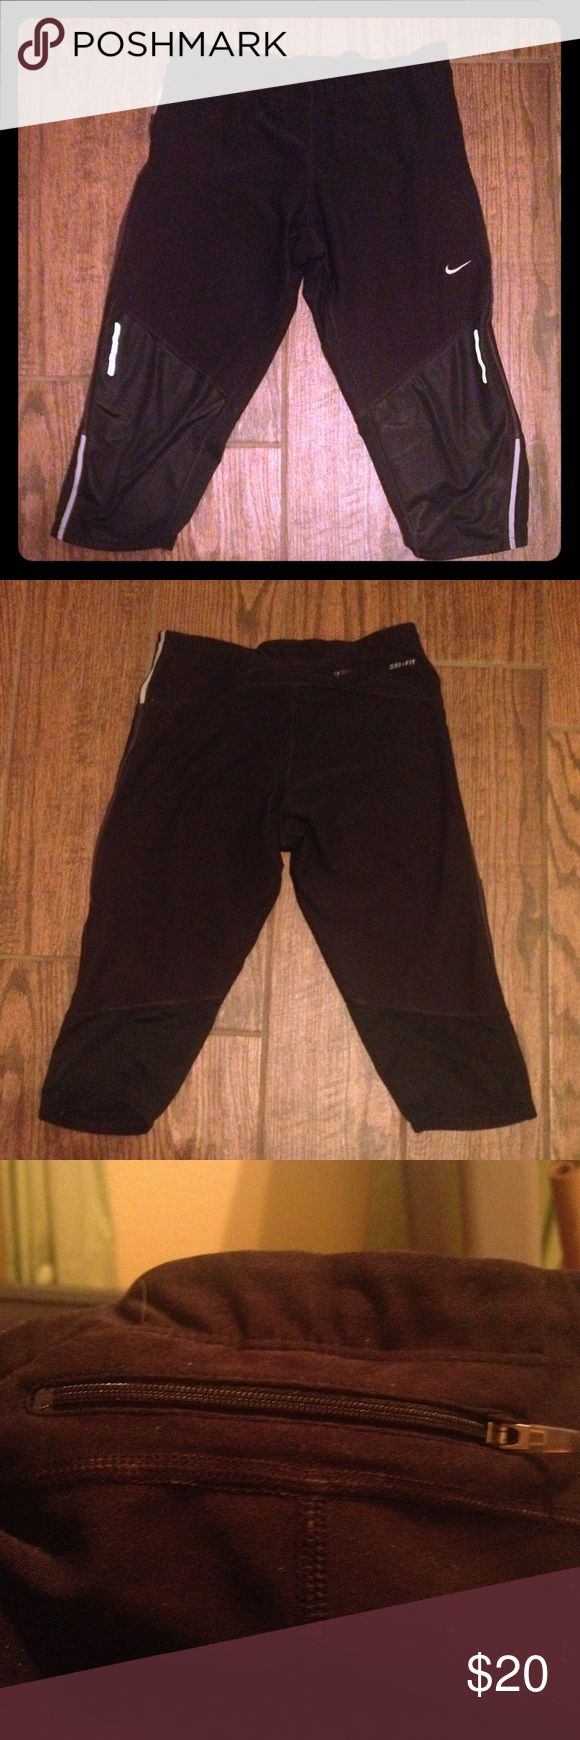 Cropped NIKE Running Pants 💥SUNDAY SALE💥 Cropped NIKE DRI-FIT Running Pants with reflectors. Zip pockets in back waistband and on legs.  SALE PRICE IS FIRM Nike Pants Track Pants & Joggers